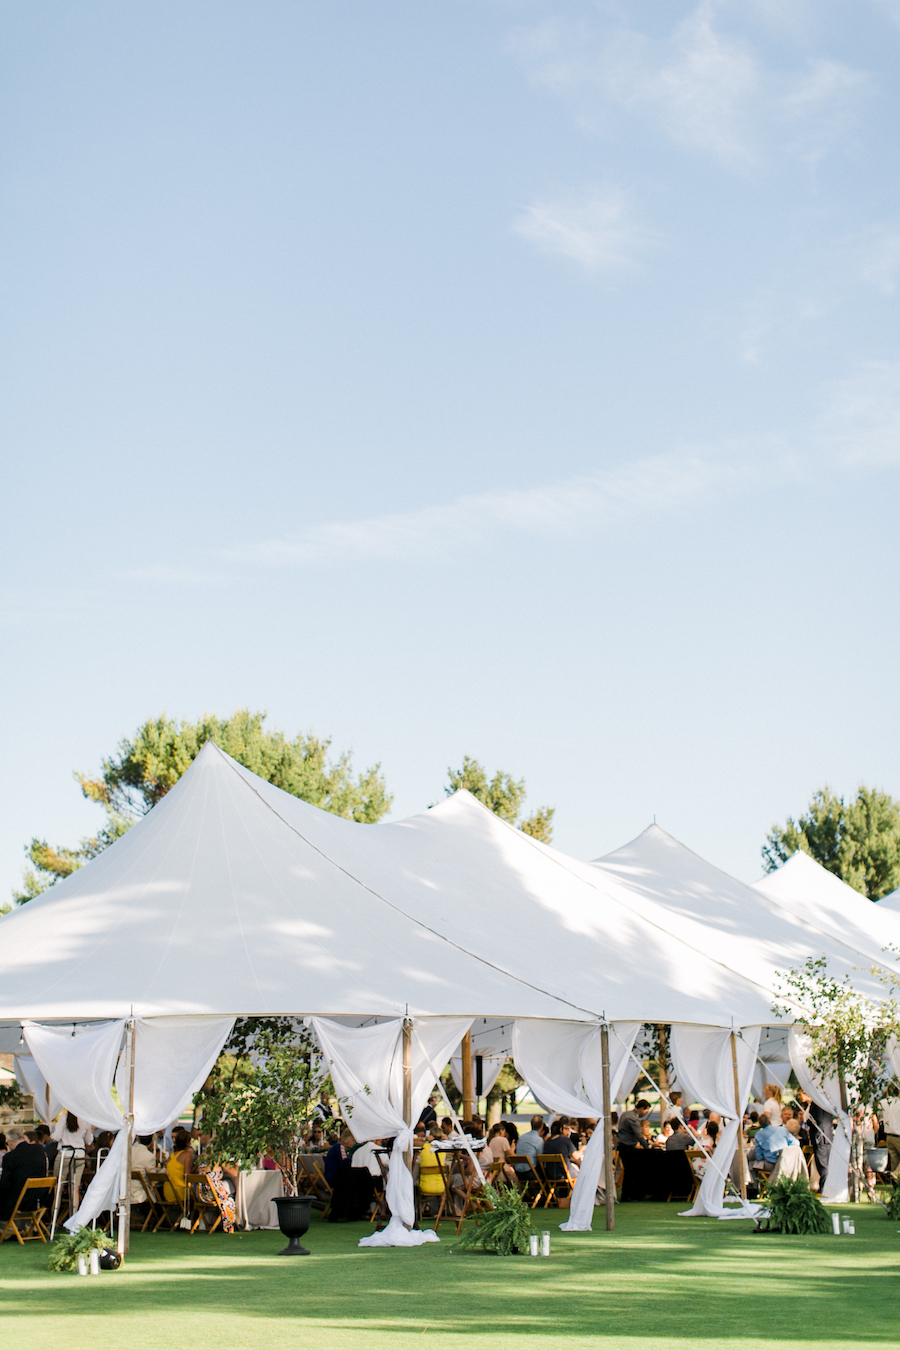 A lakeside wedding tent